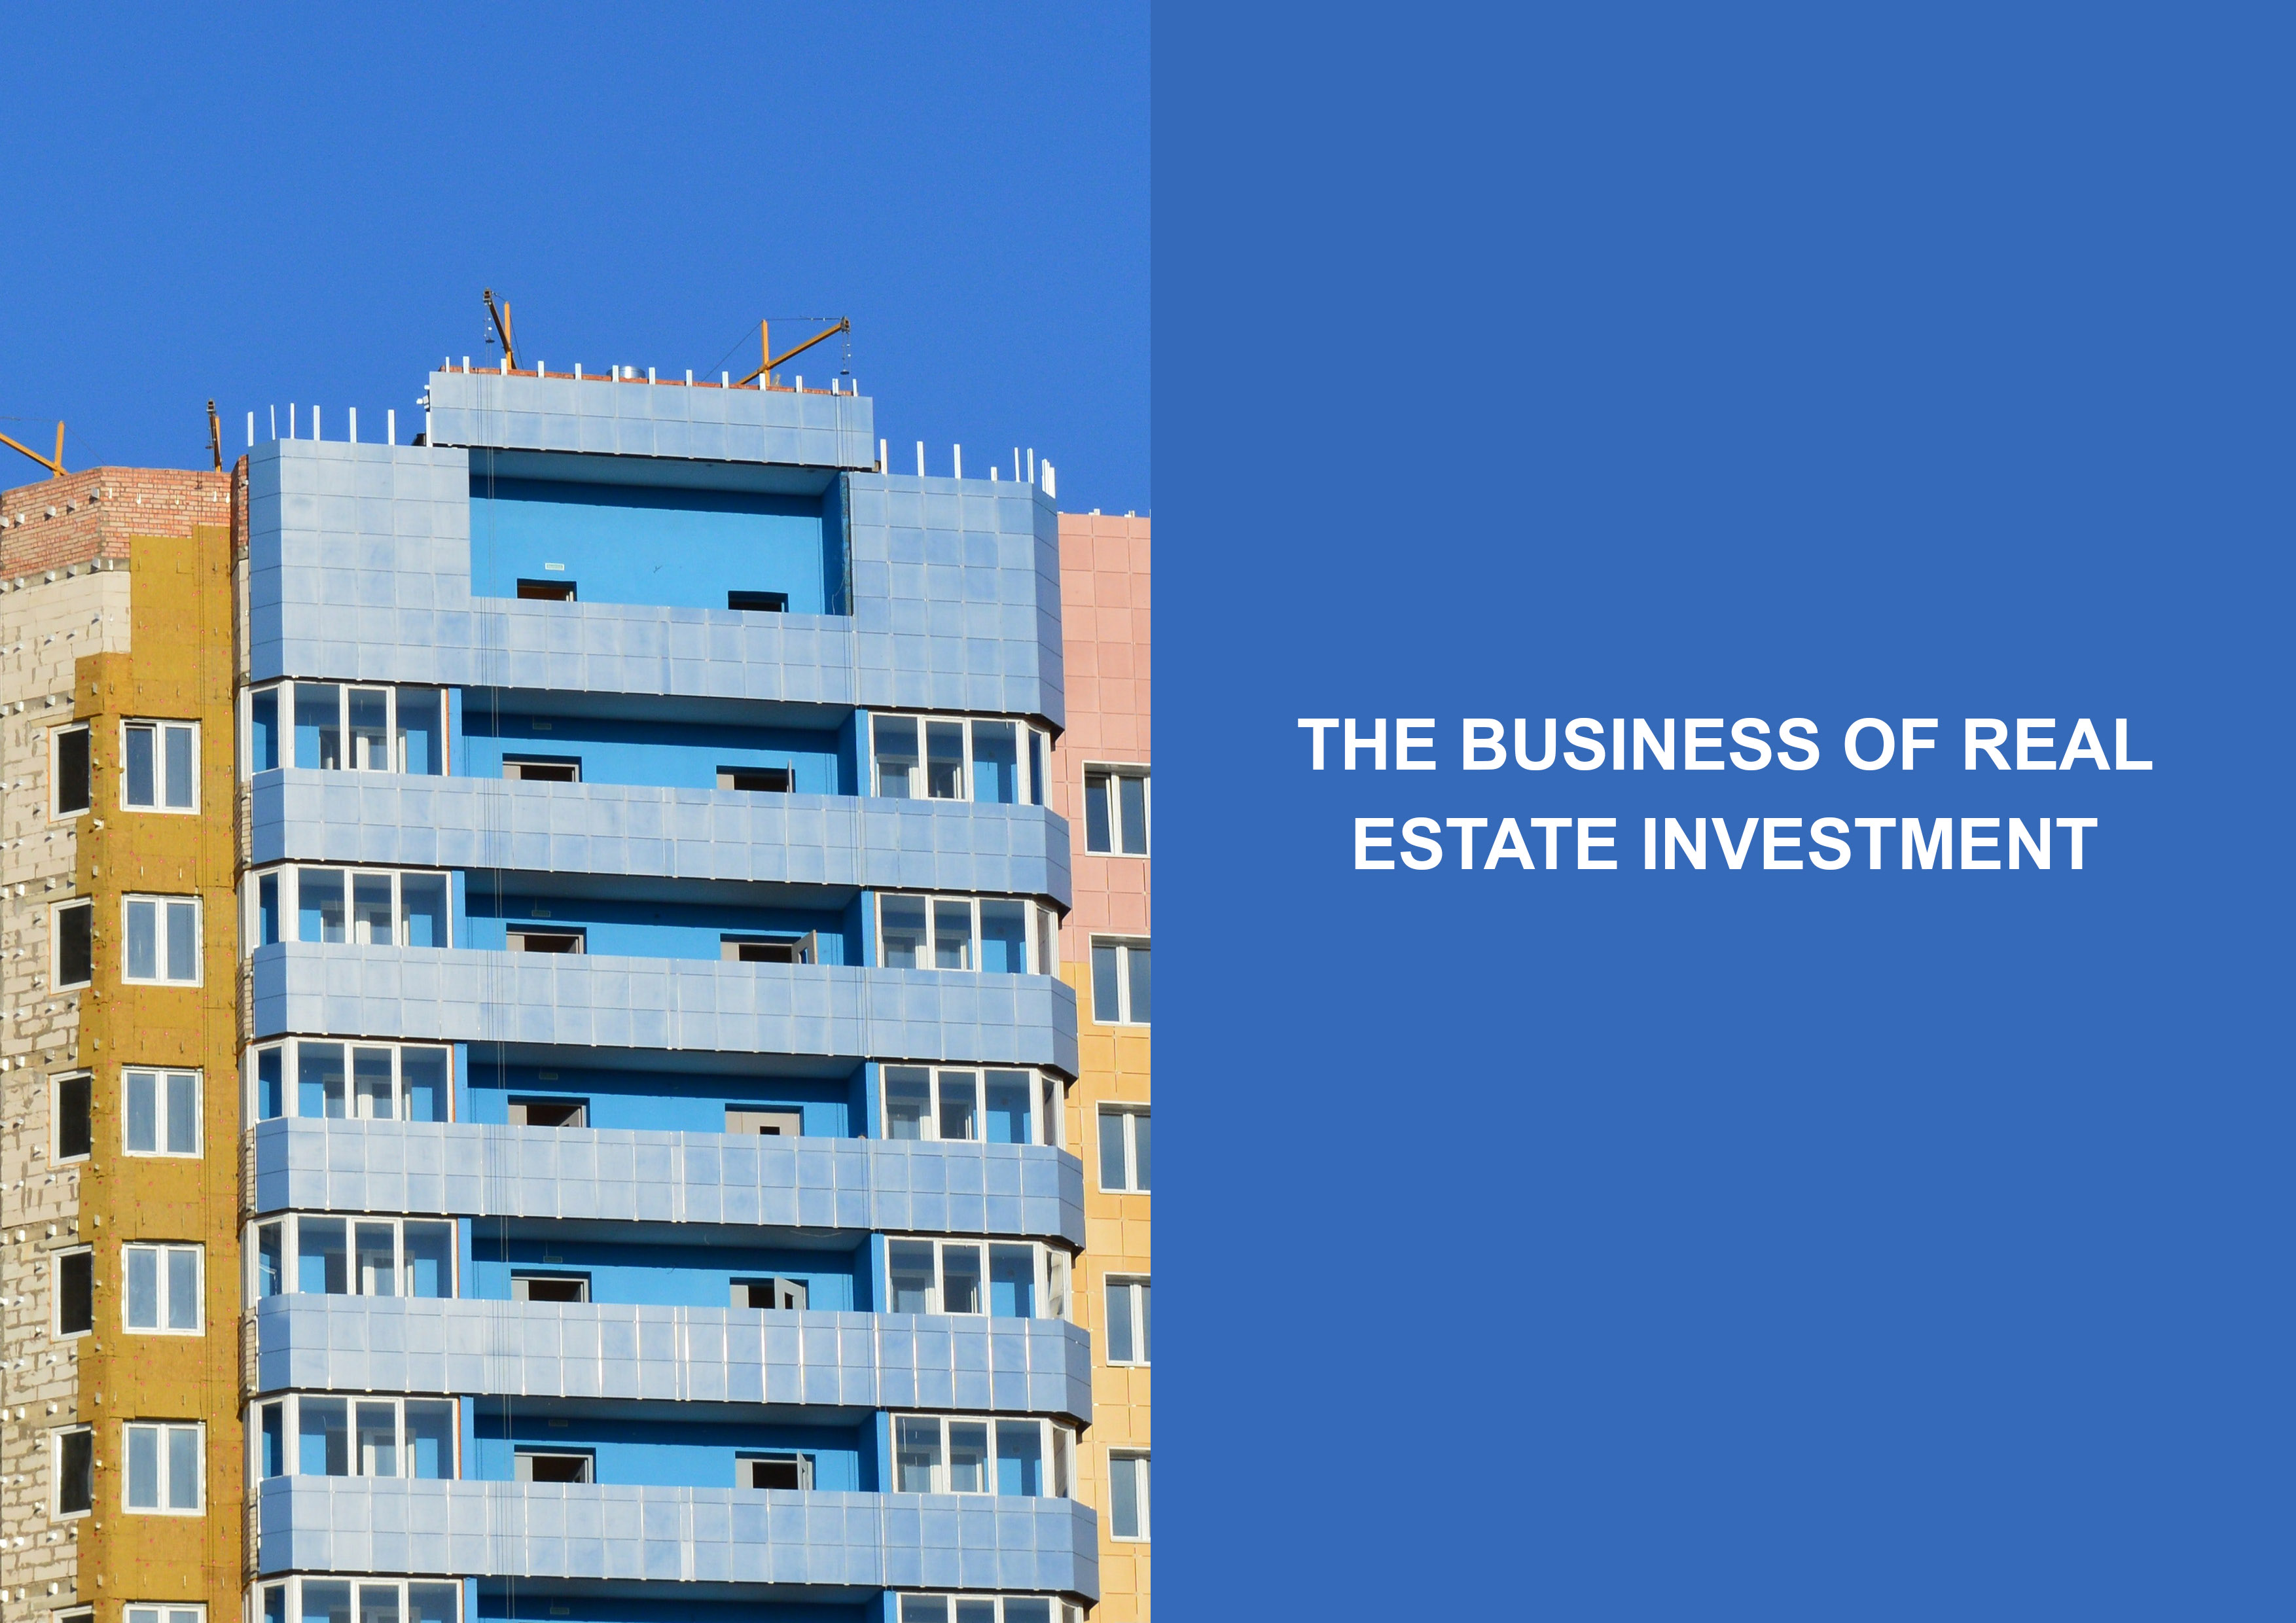 The Business of Real Estate Investment